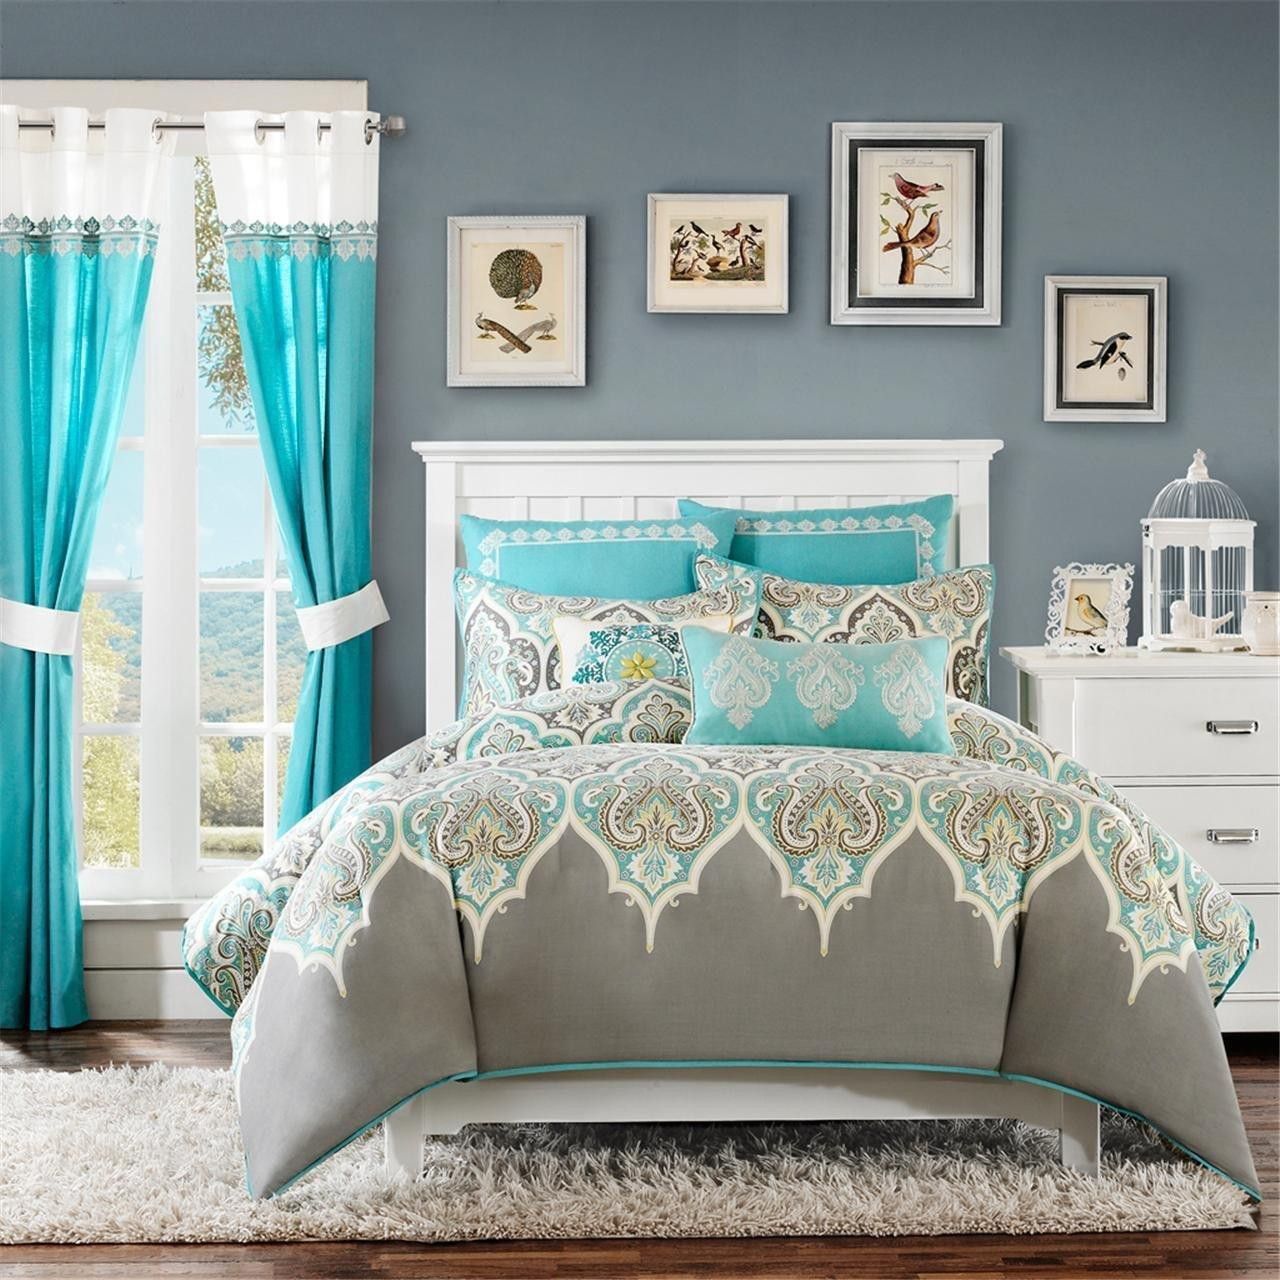 Perfect Better Homes And Garden Comforter Sets With Blue Grey Color On  Curtains Wall And White